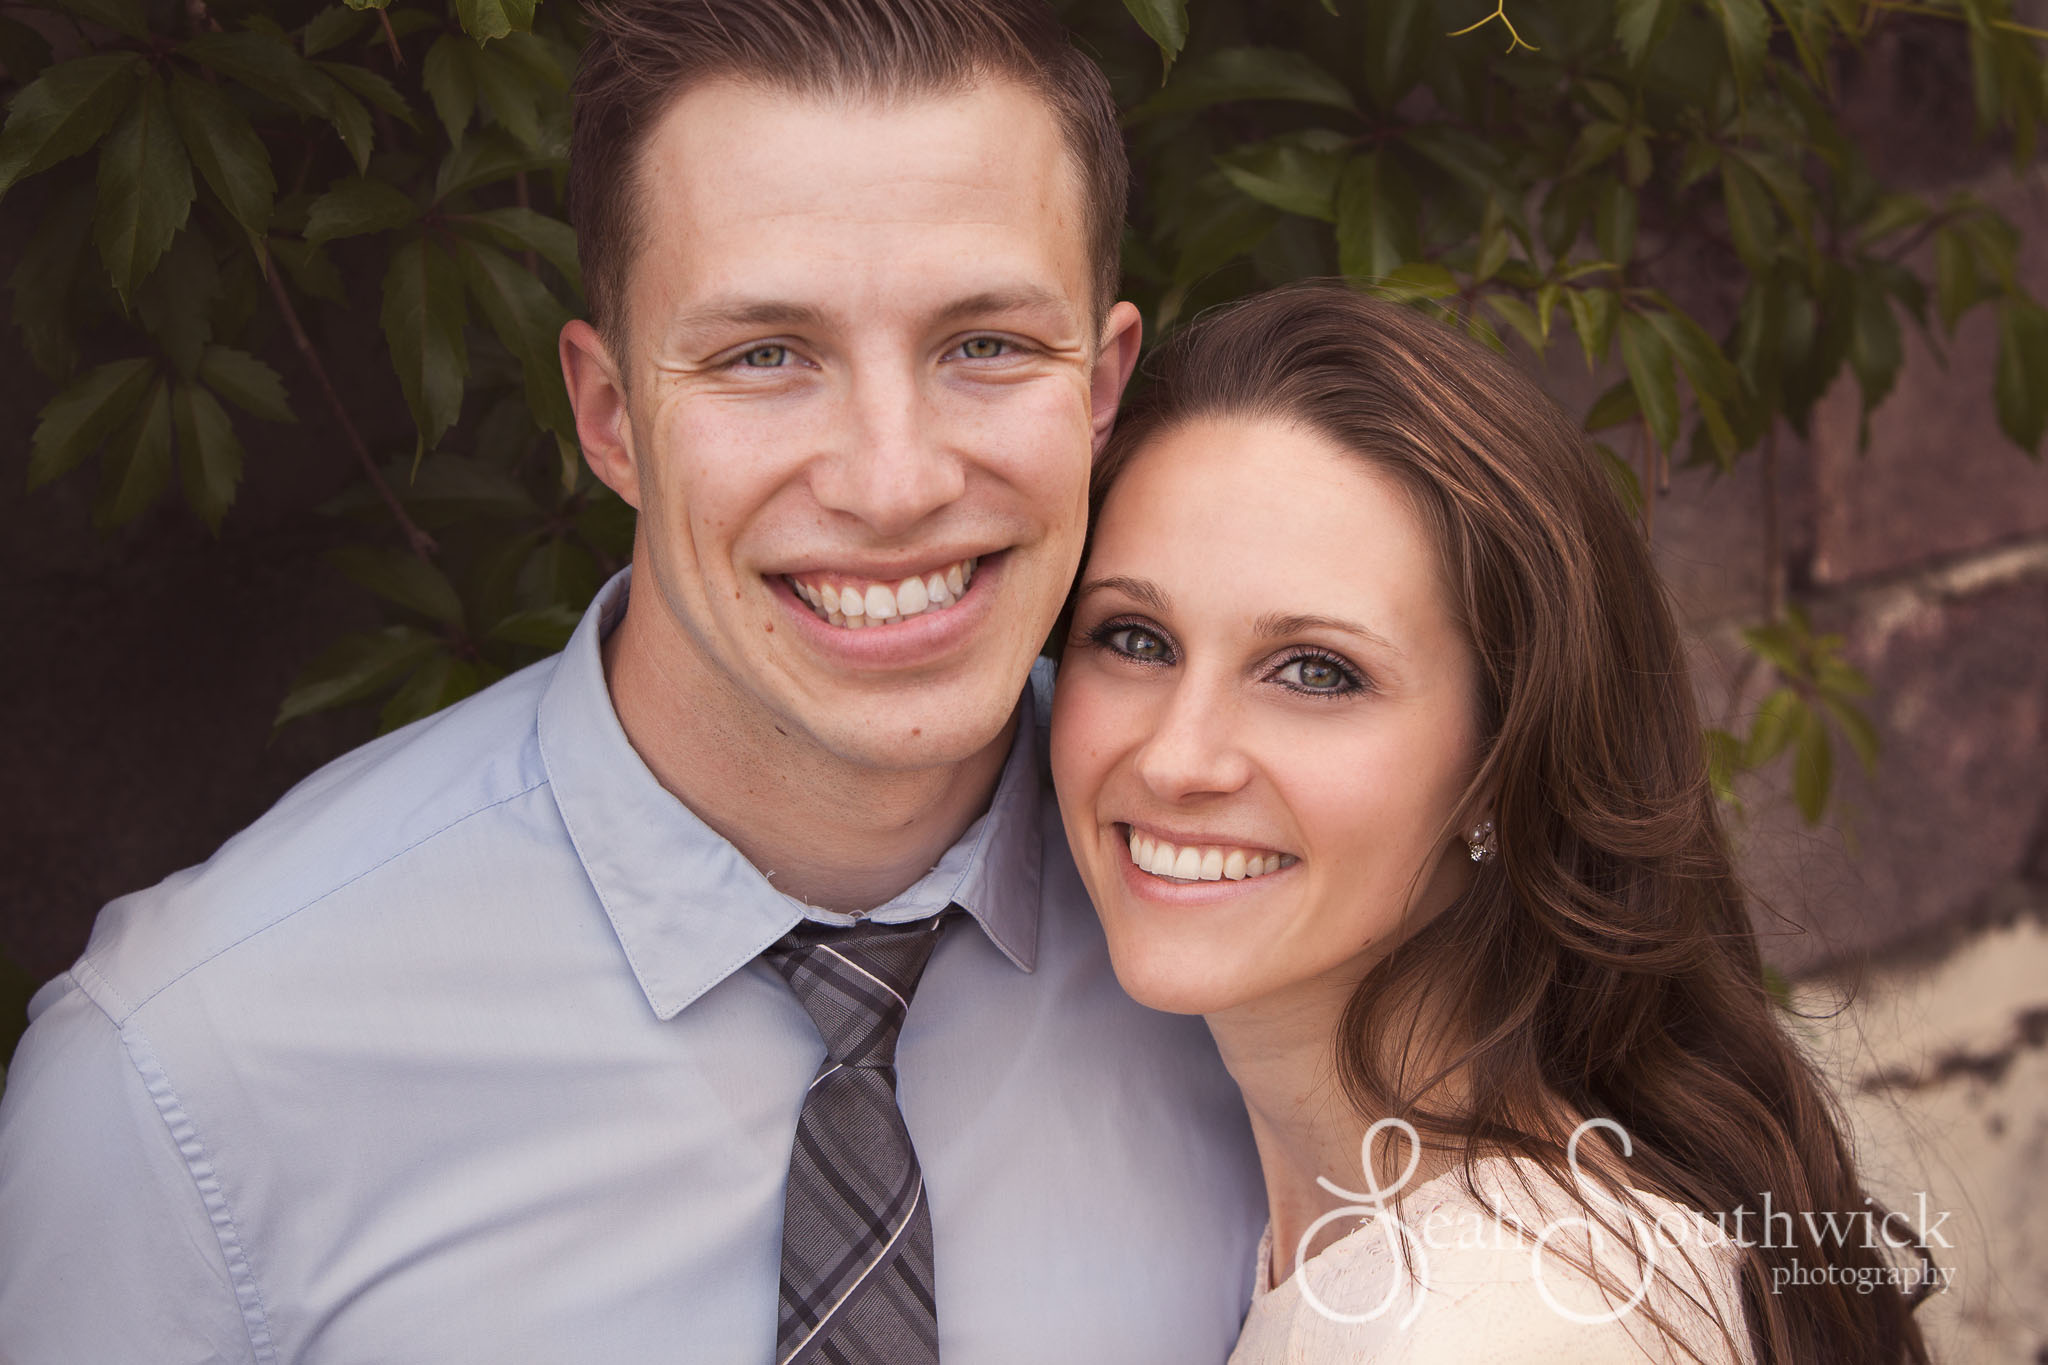 Engagement Photography Leah Southwick Photography-6.jpg